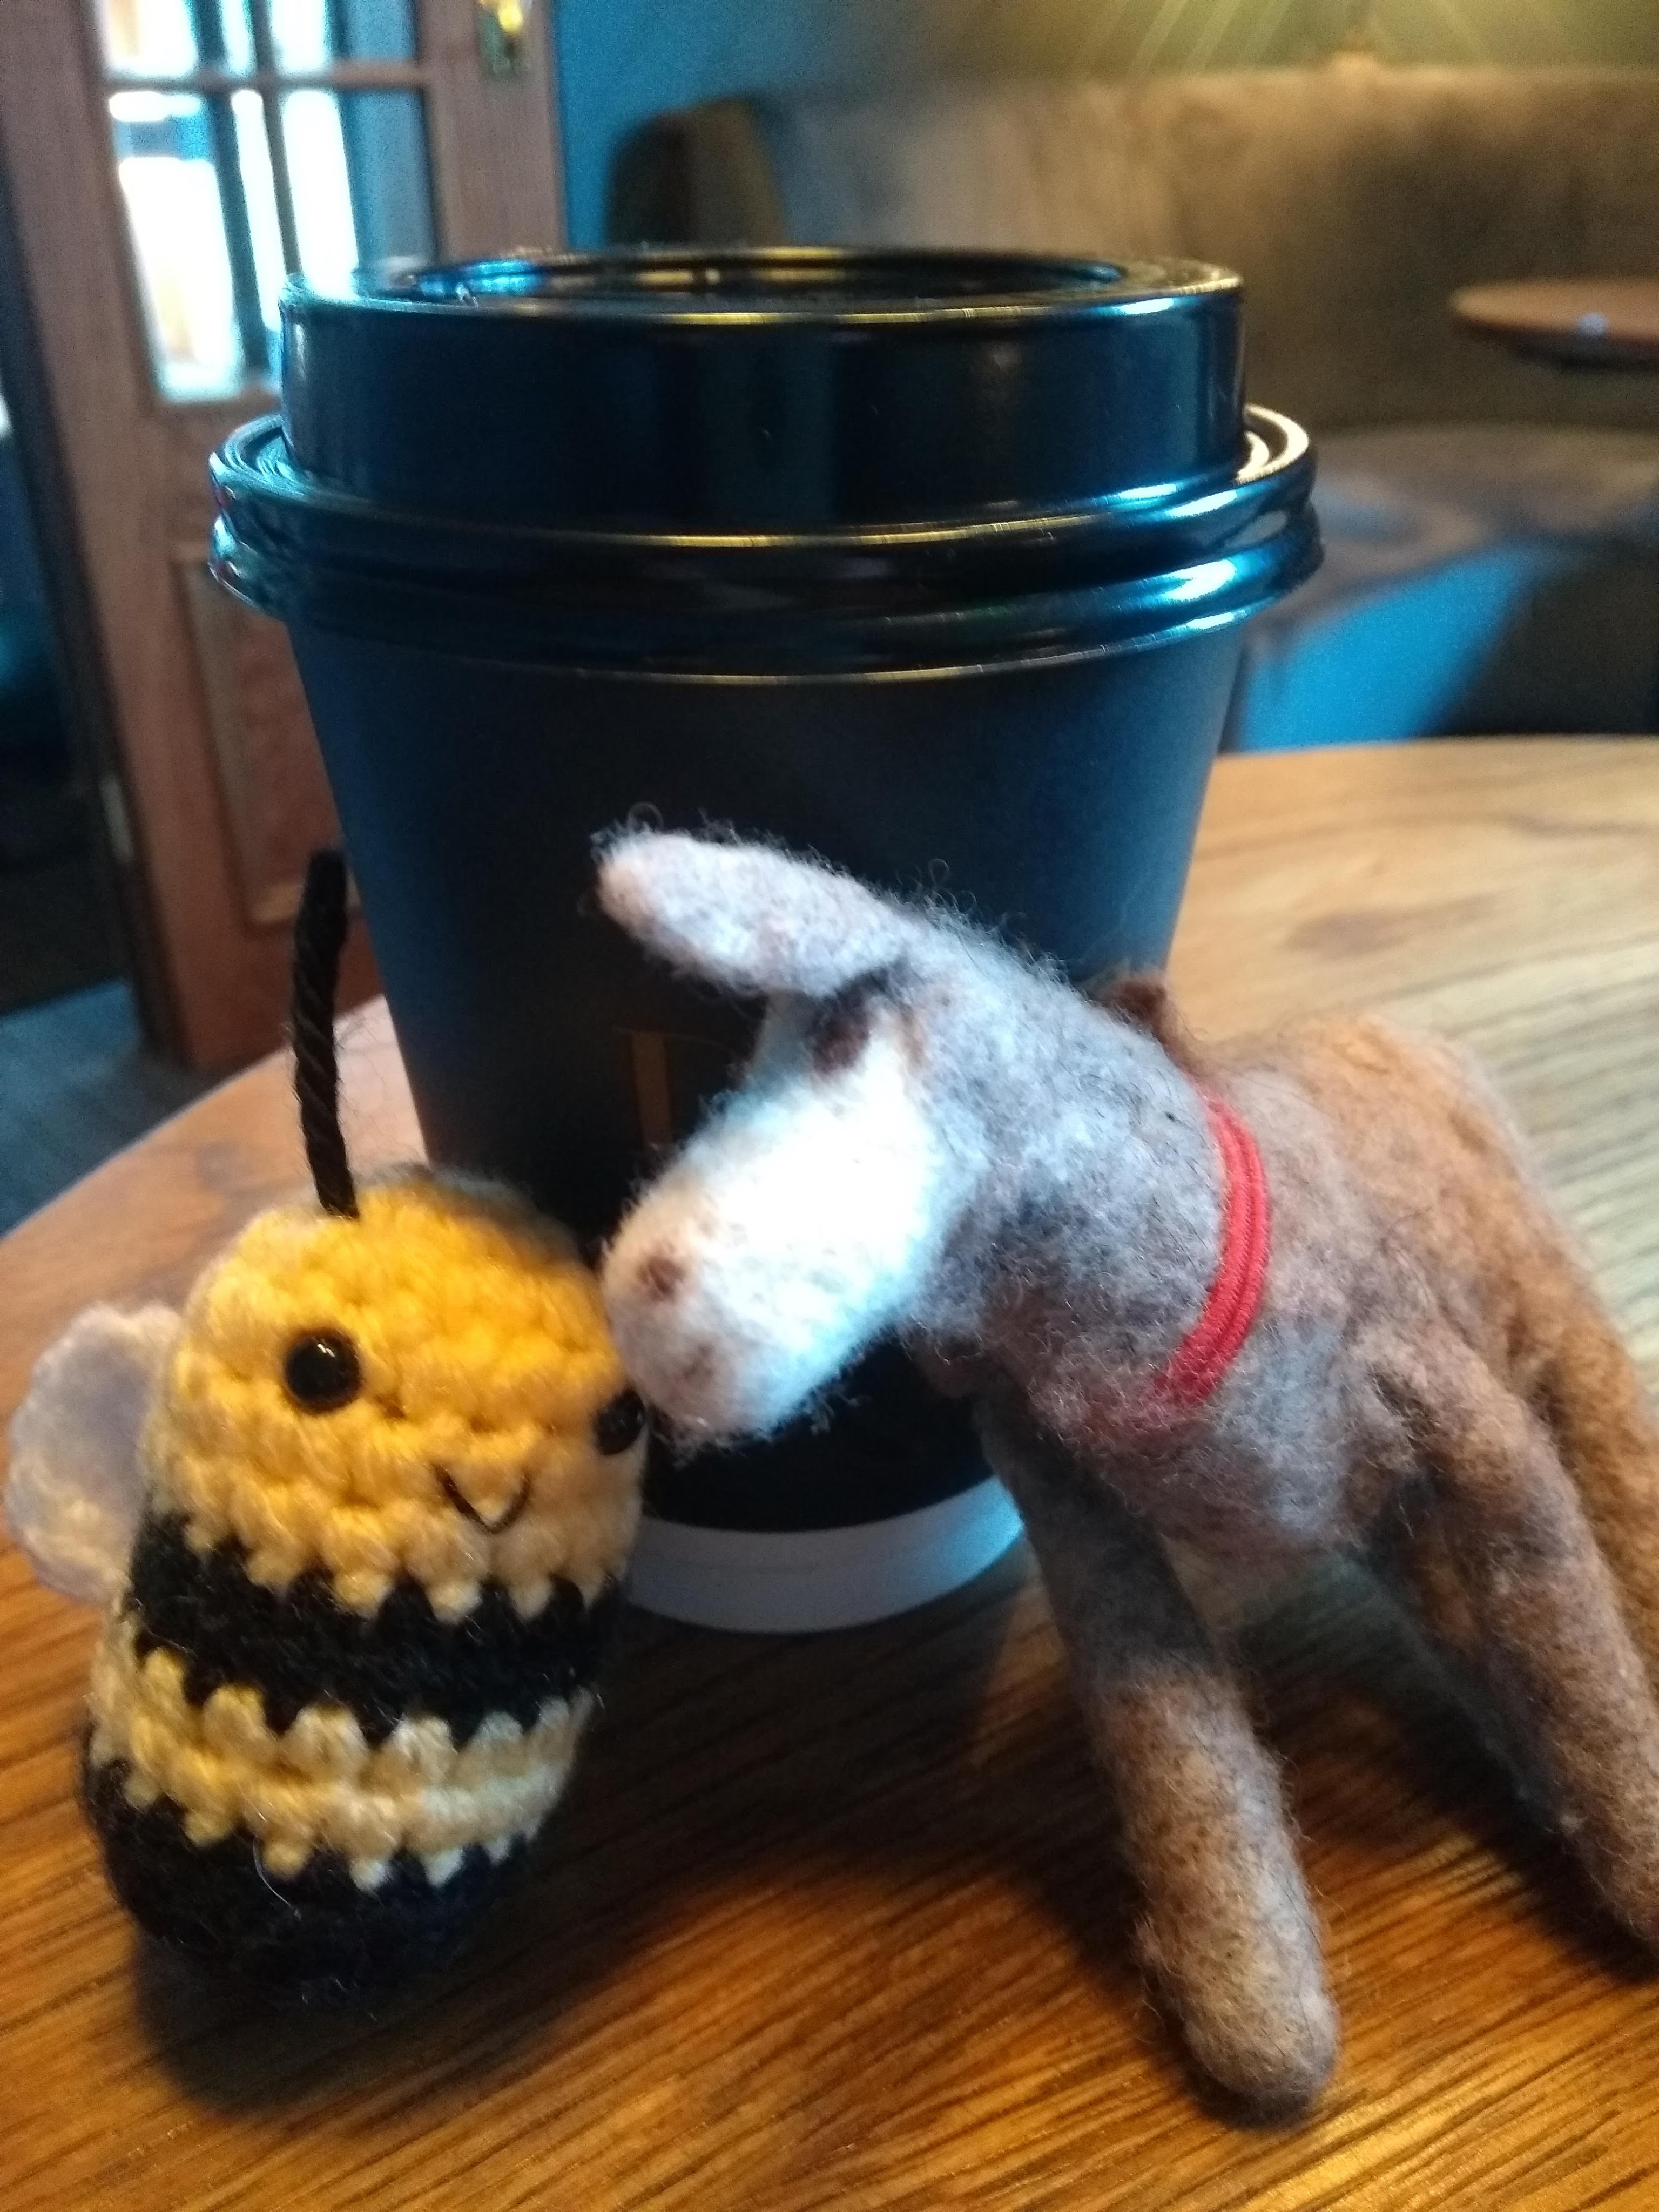 knit bee and felt donkey leaning up against black to go coffee cup